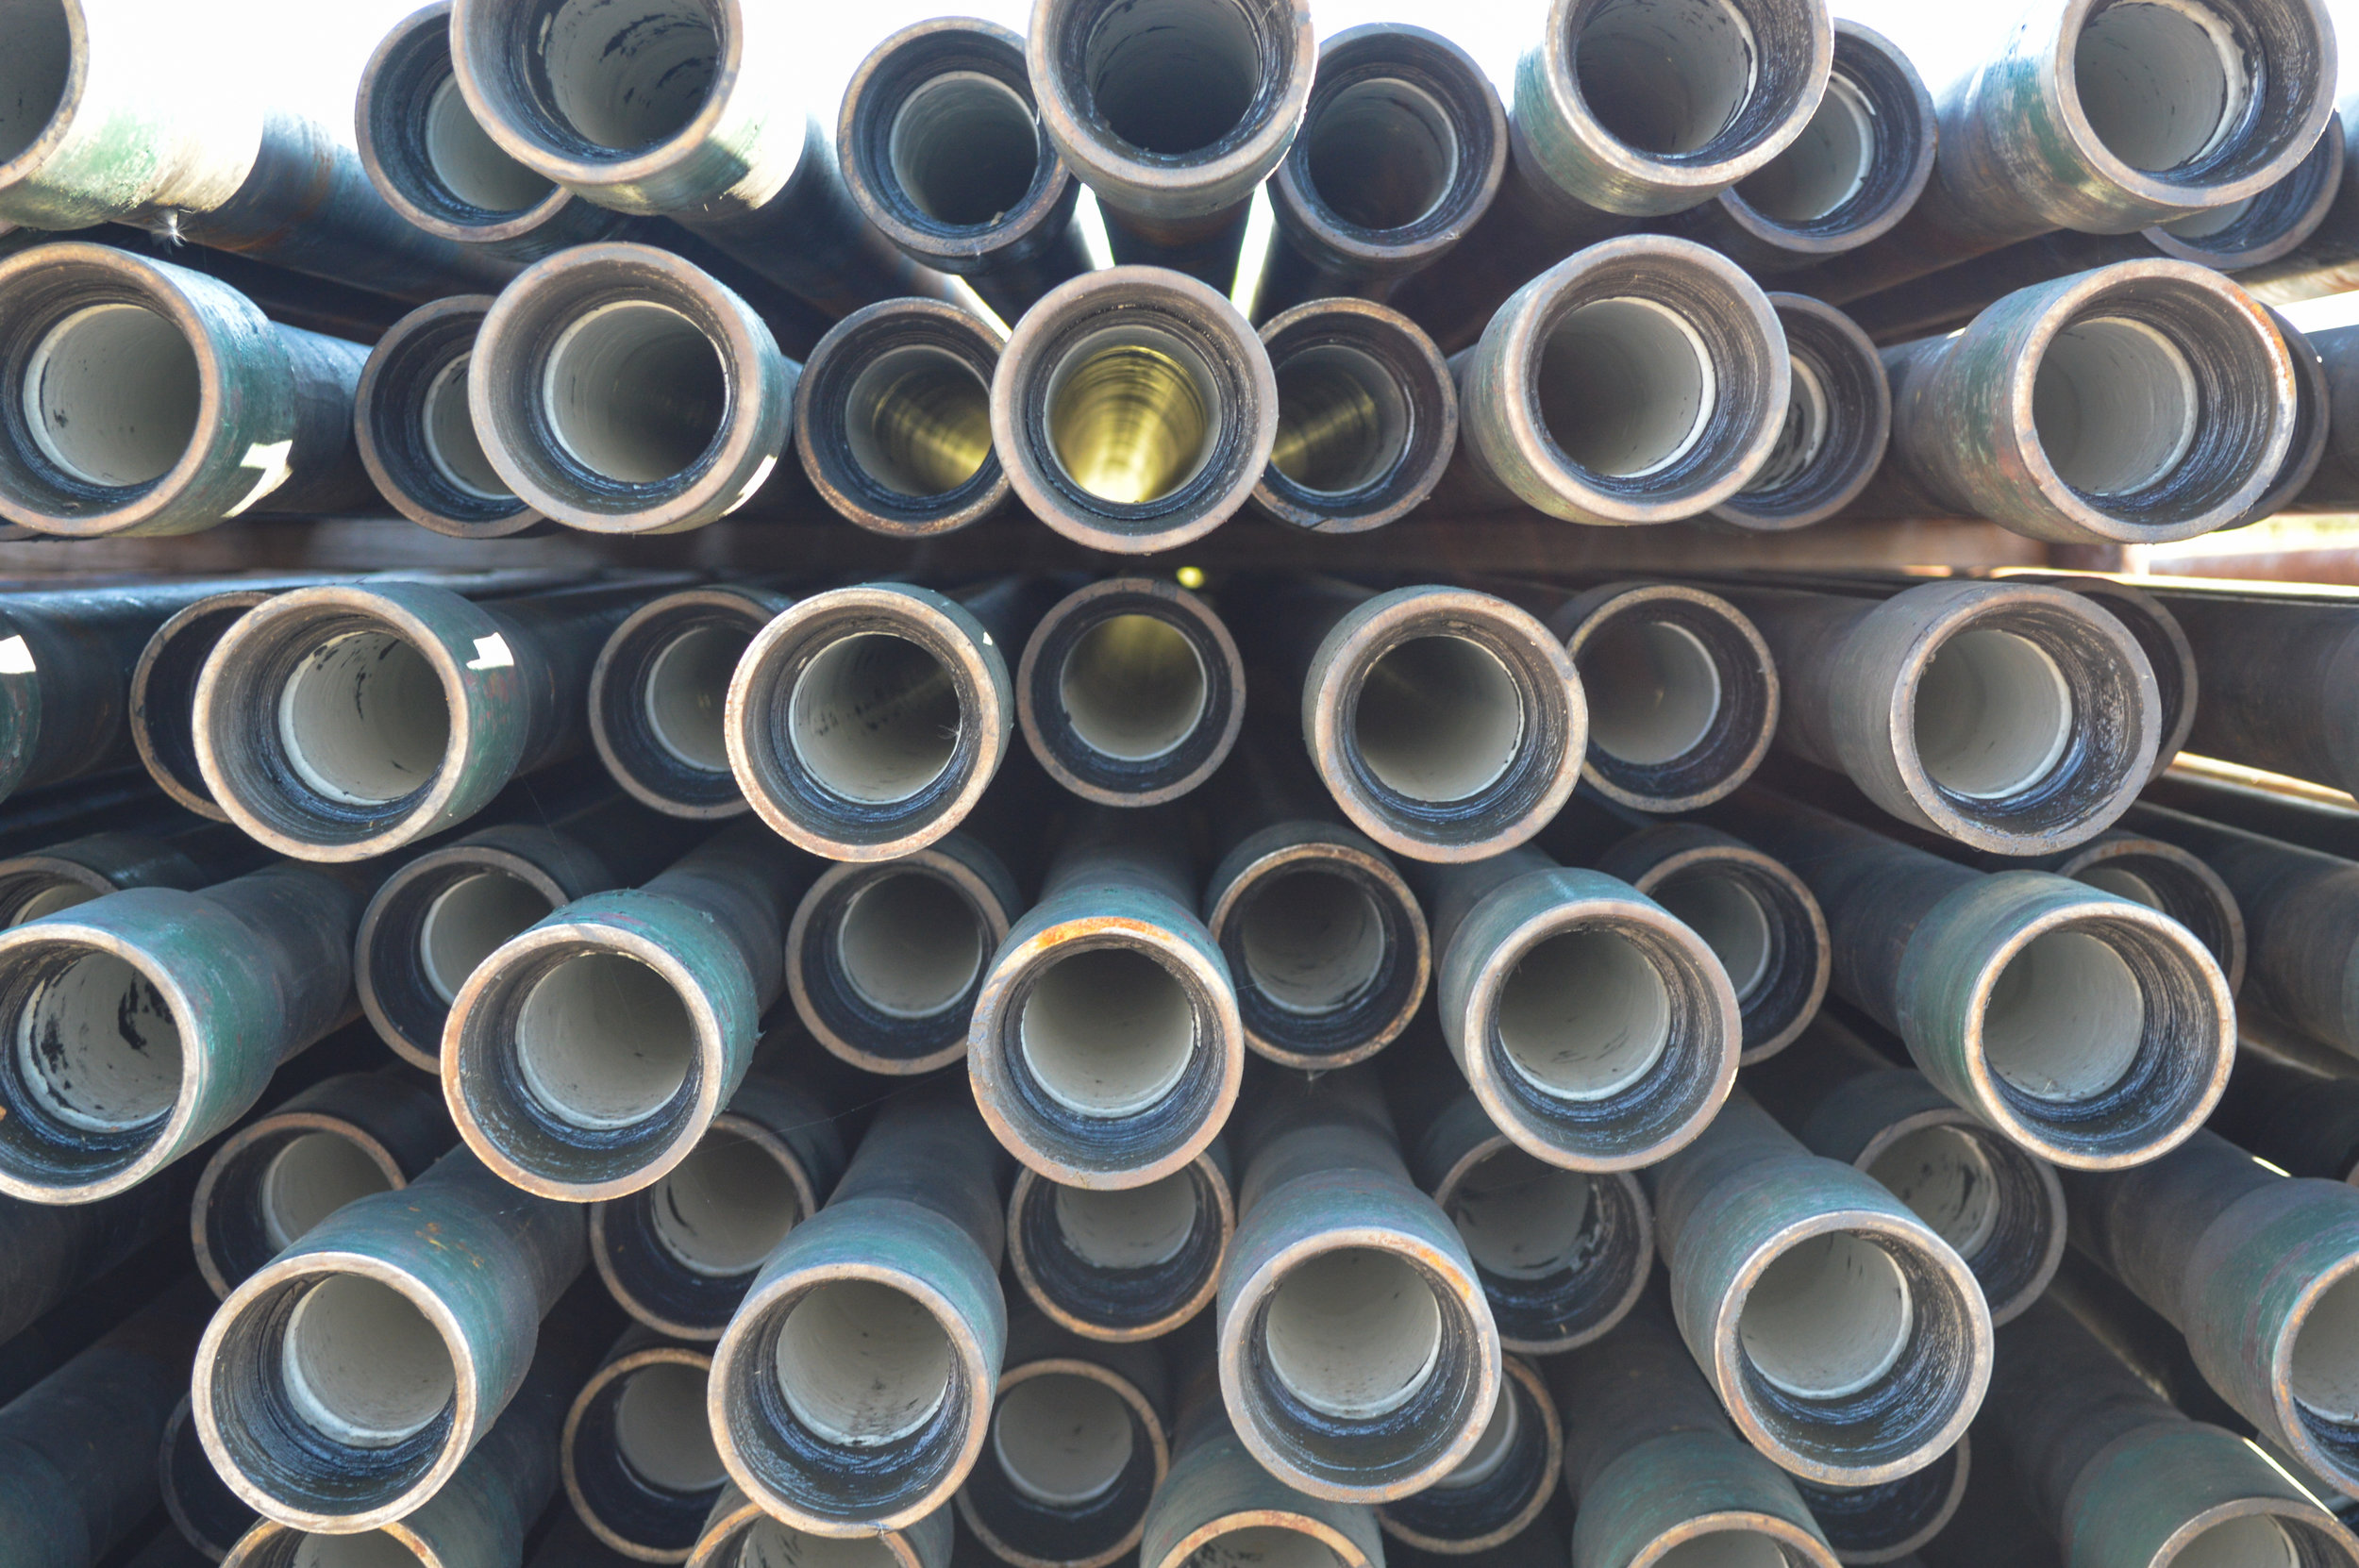 Pipes - Landscape-0027.jpg